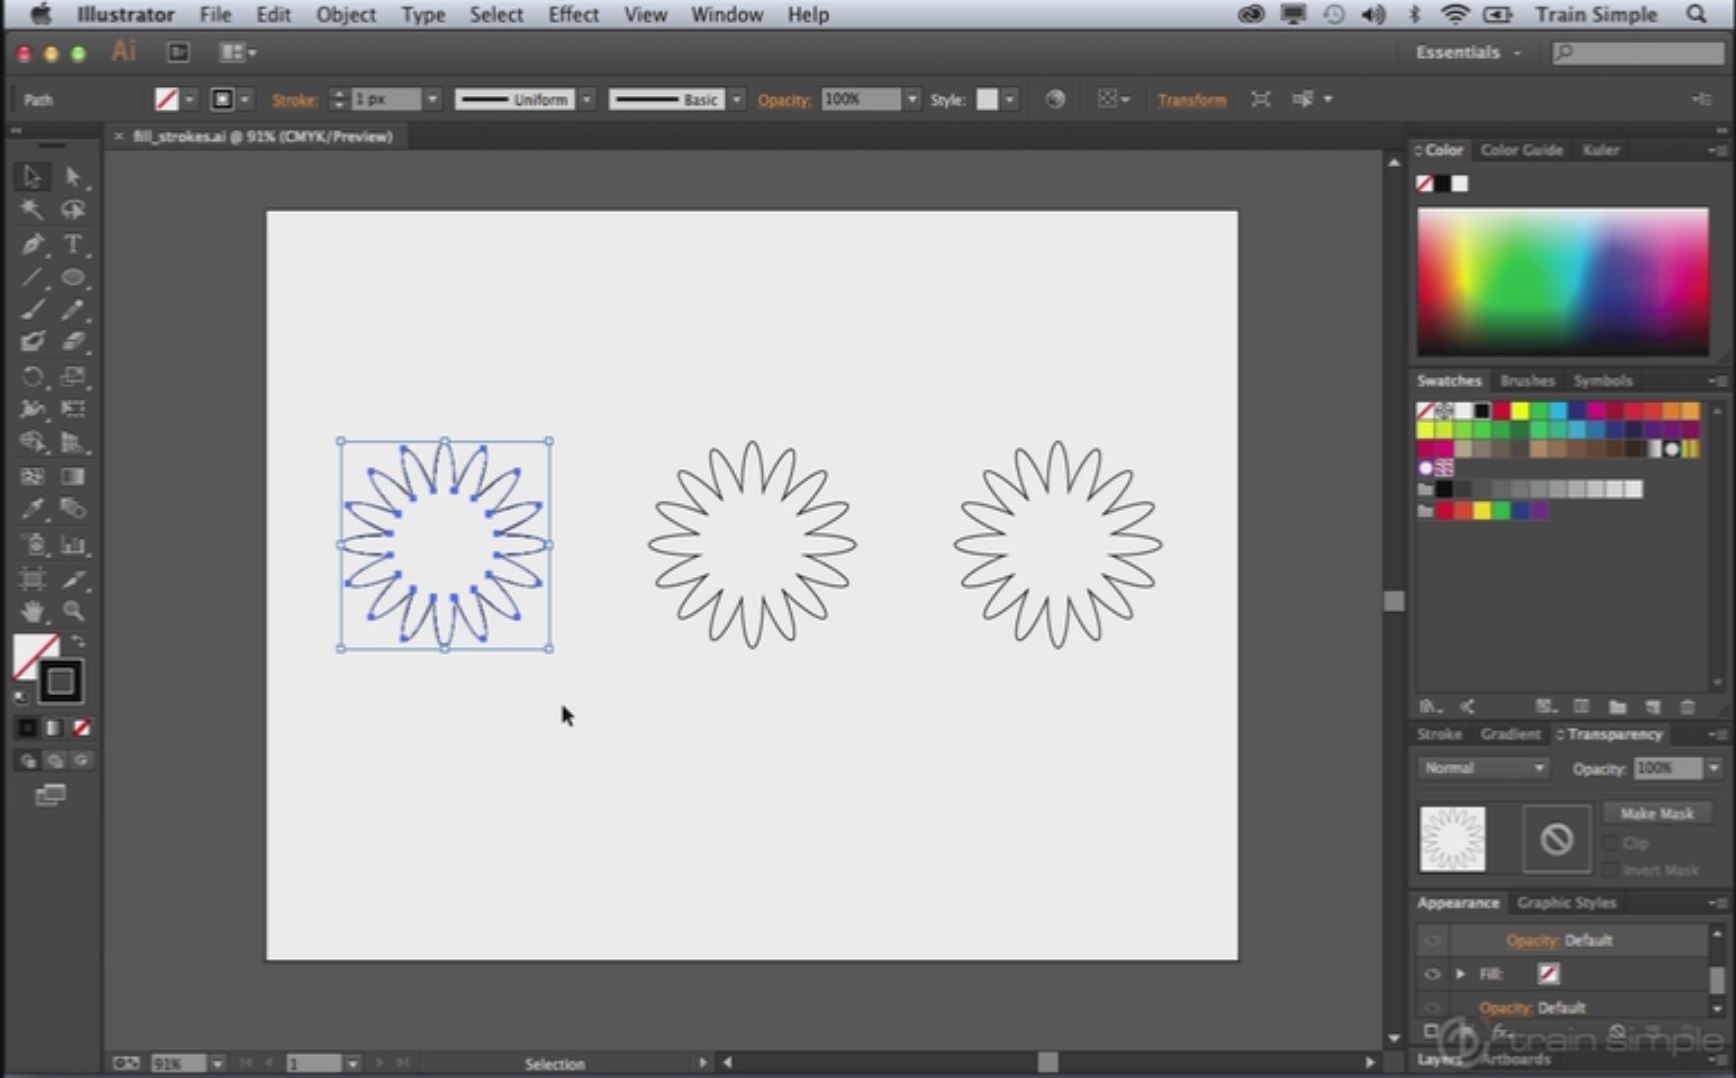 How to Apply Colors in Adobe Illustrator | Evolutionary Designs